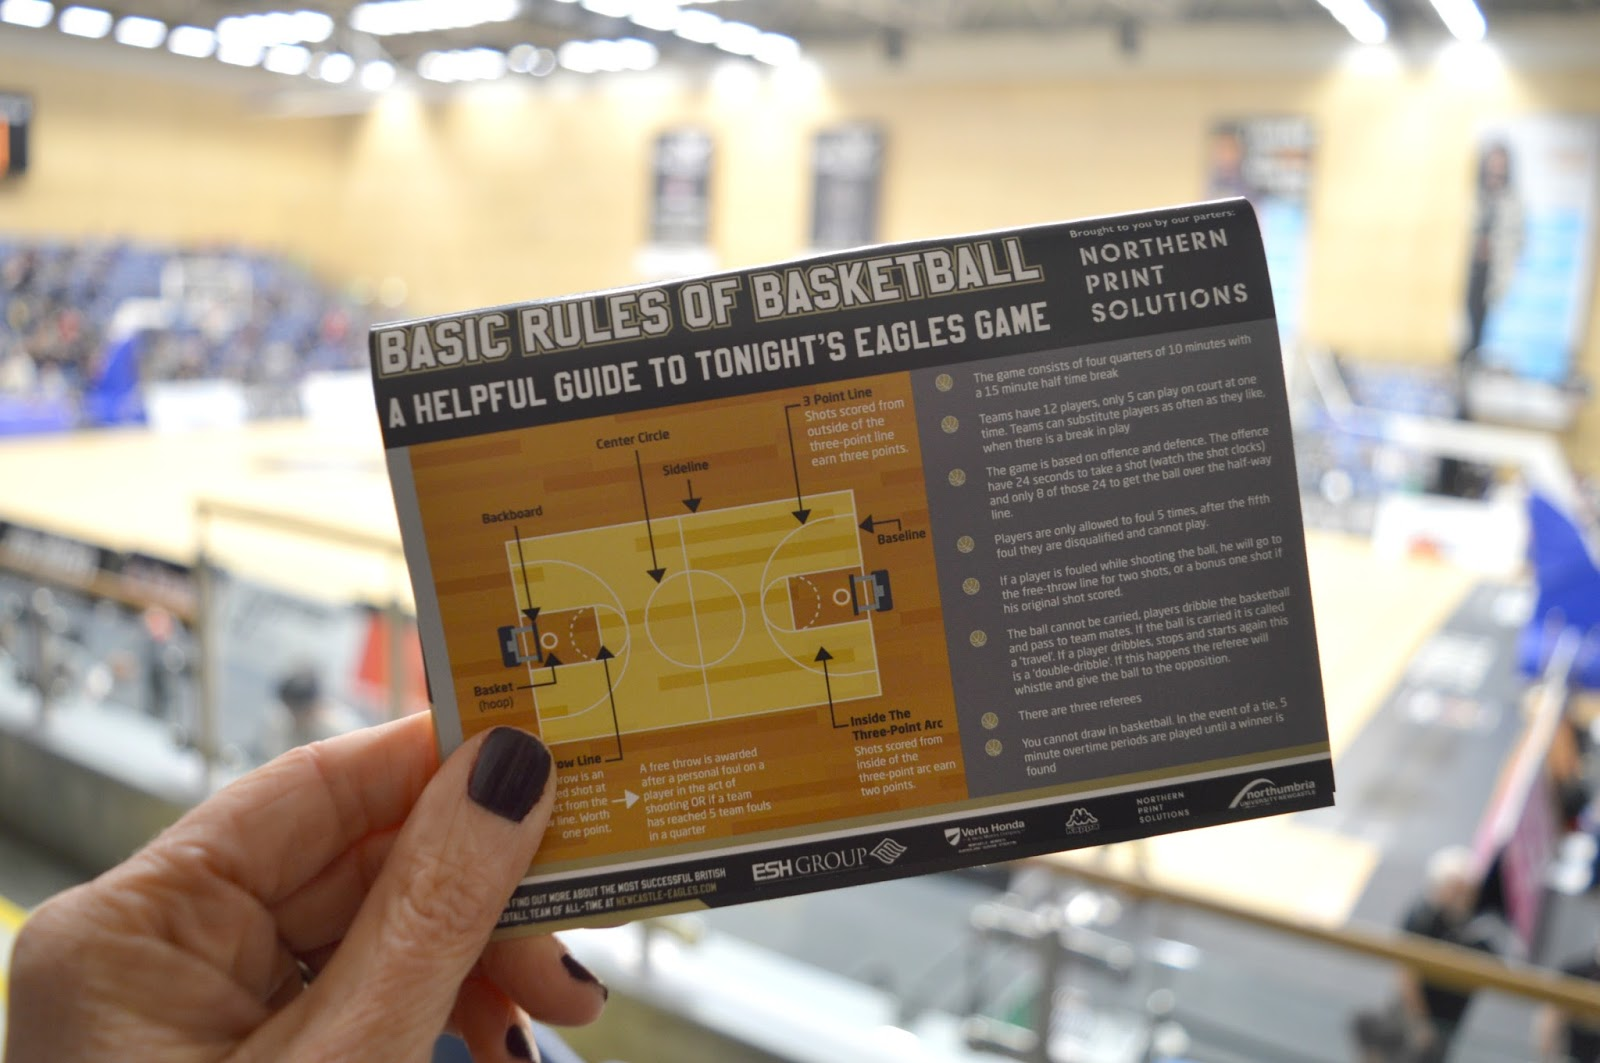 Newcastle Eagles Basketball Game  - Northern Print Solutions